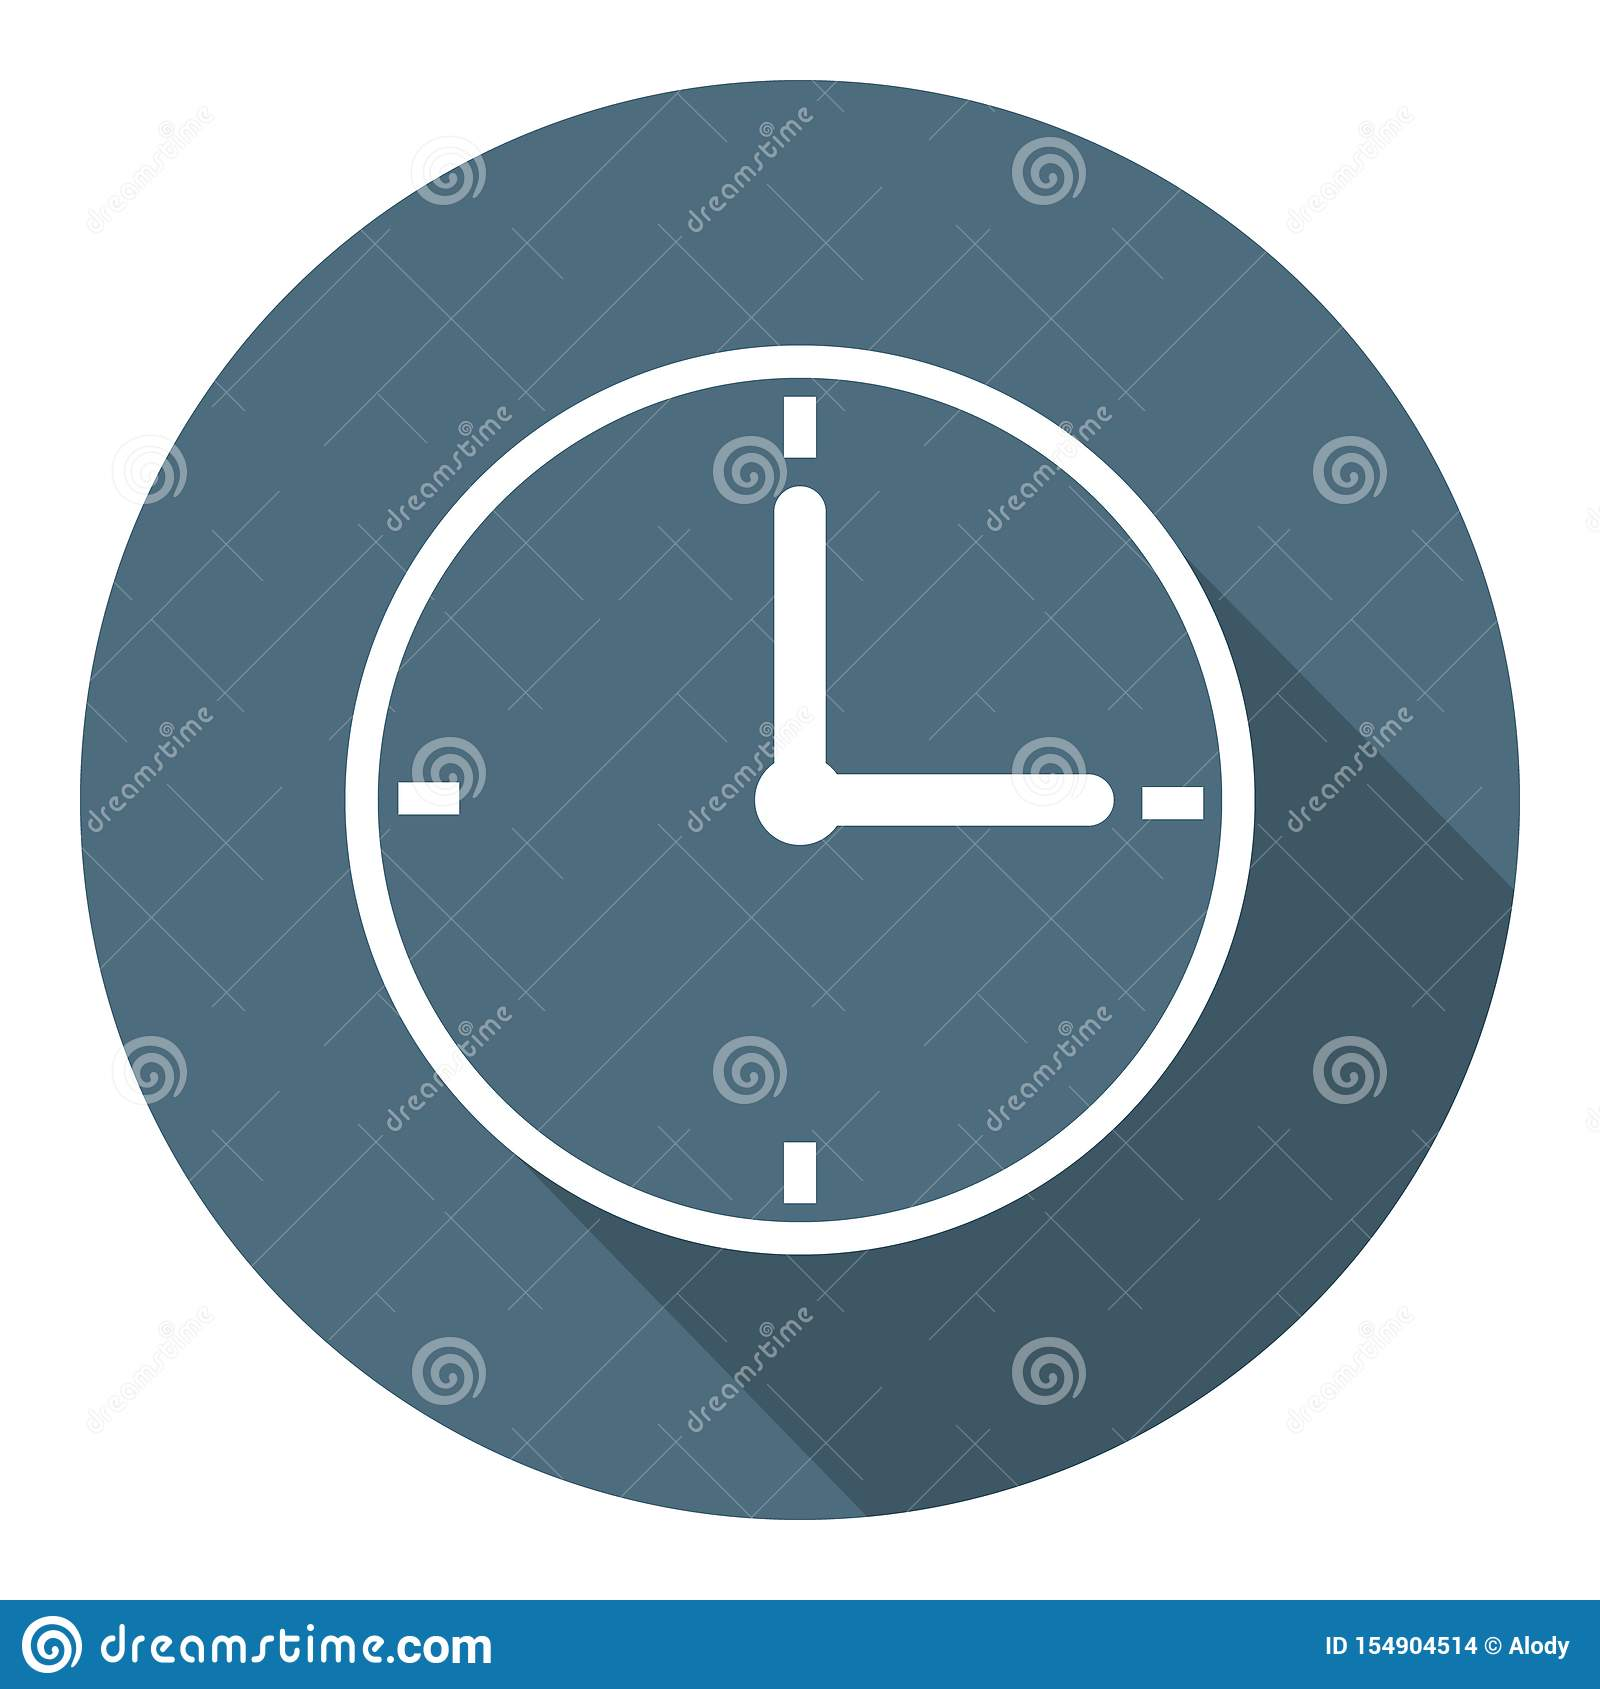 Clock Icon. Time Symbol. Outline Flat Style. Vector illustration for Your Design, Web